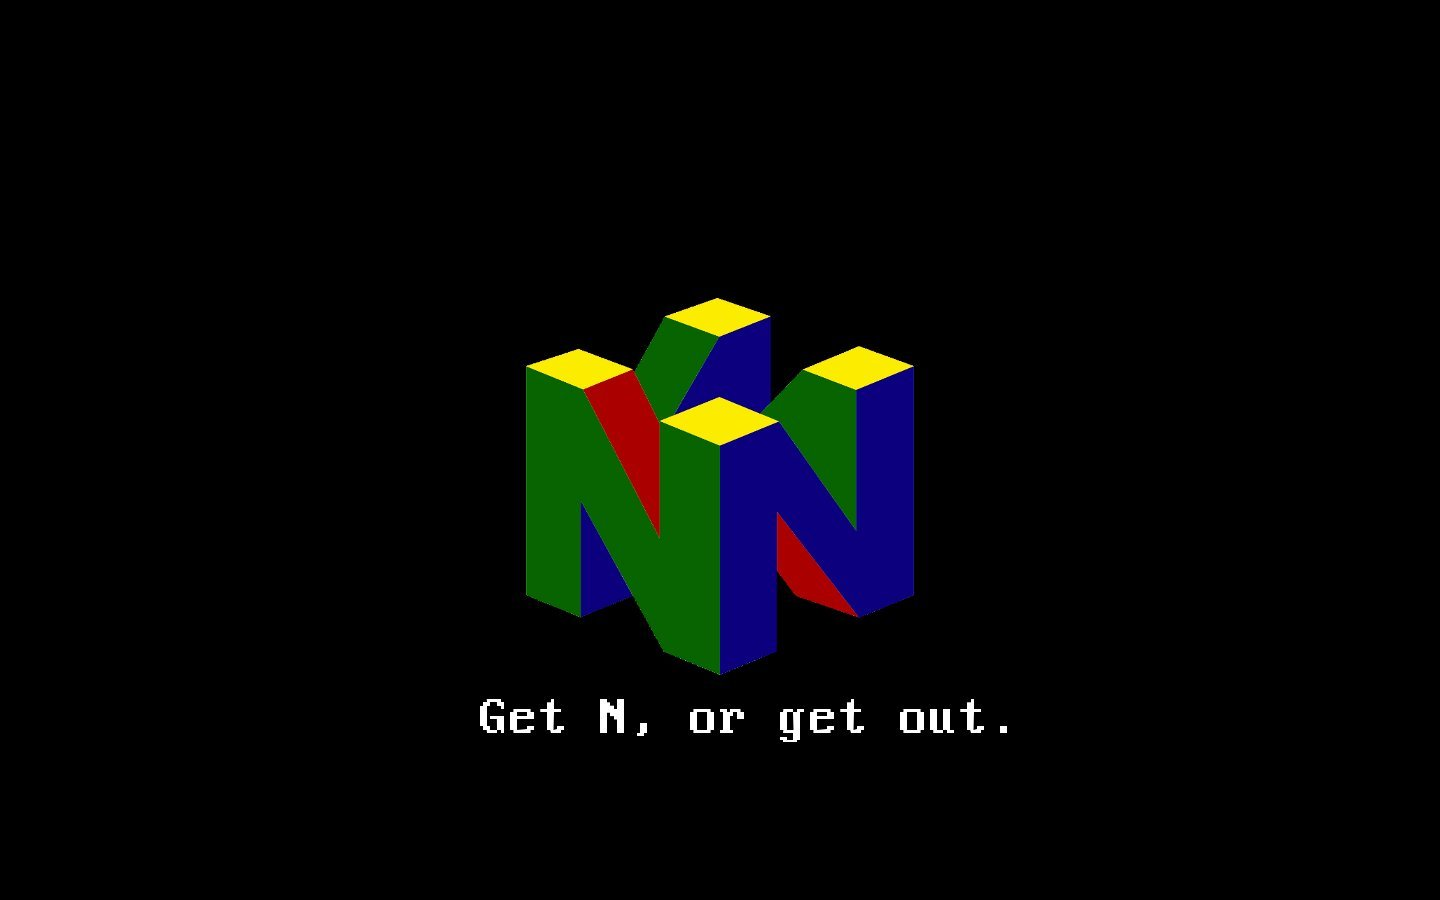 n64 Logo Wallpaper